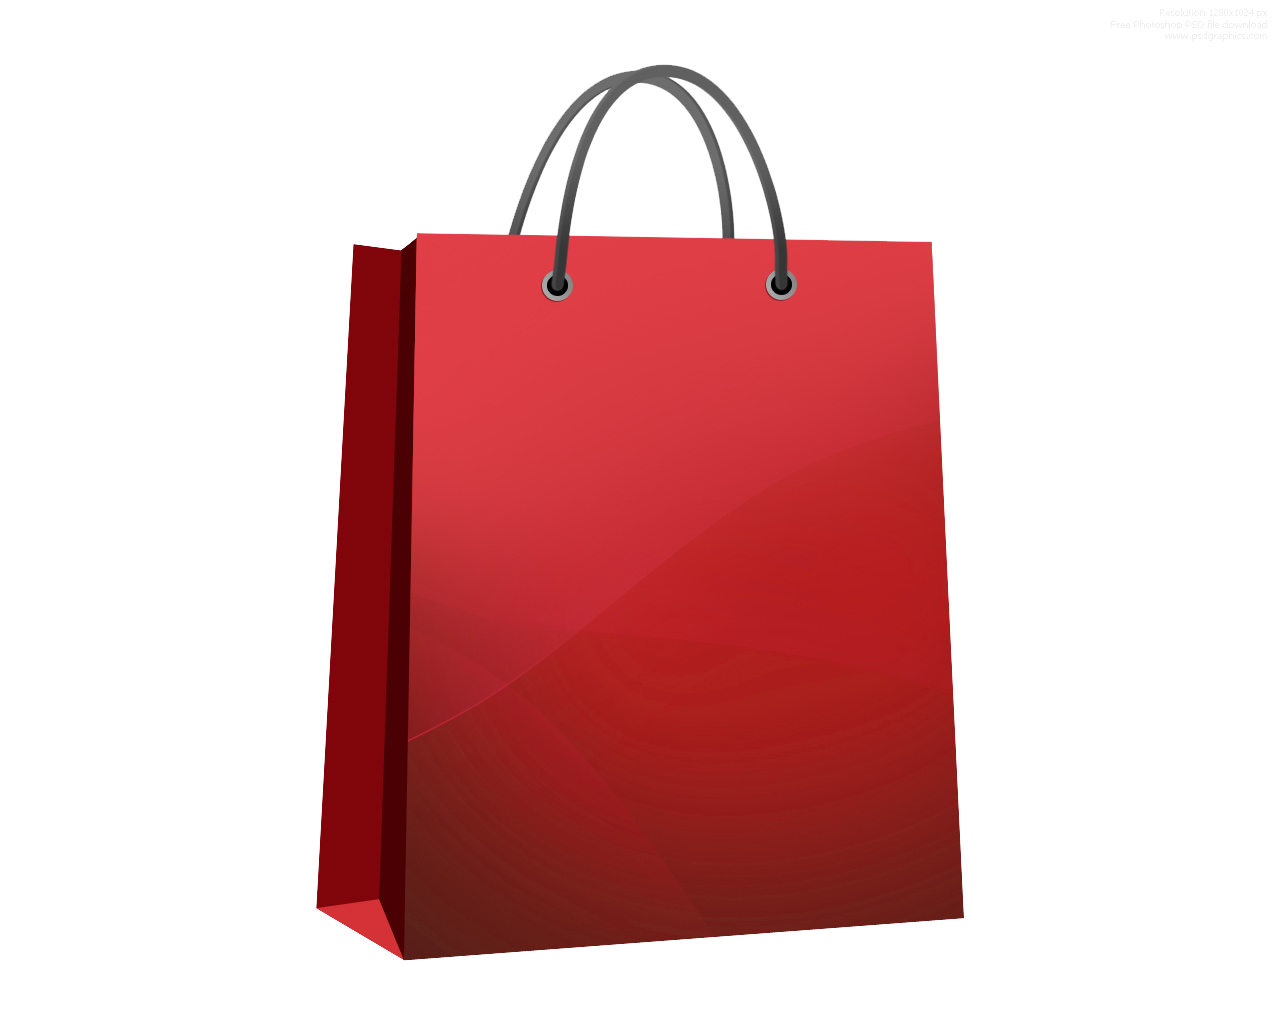 Hand clipart purse.  collection of shopping